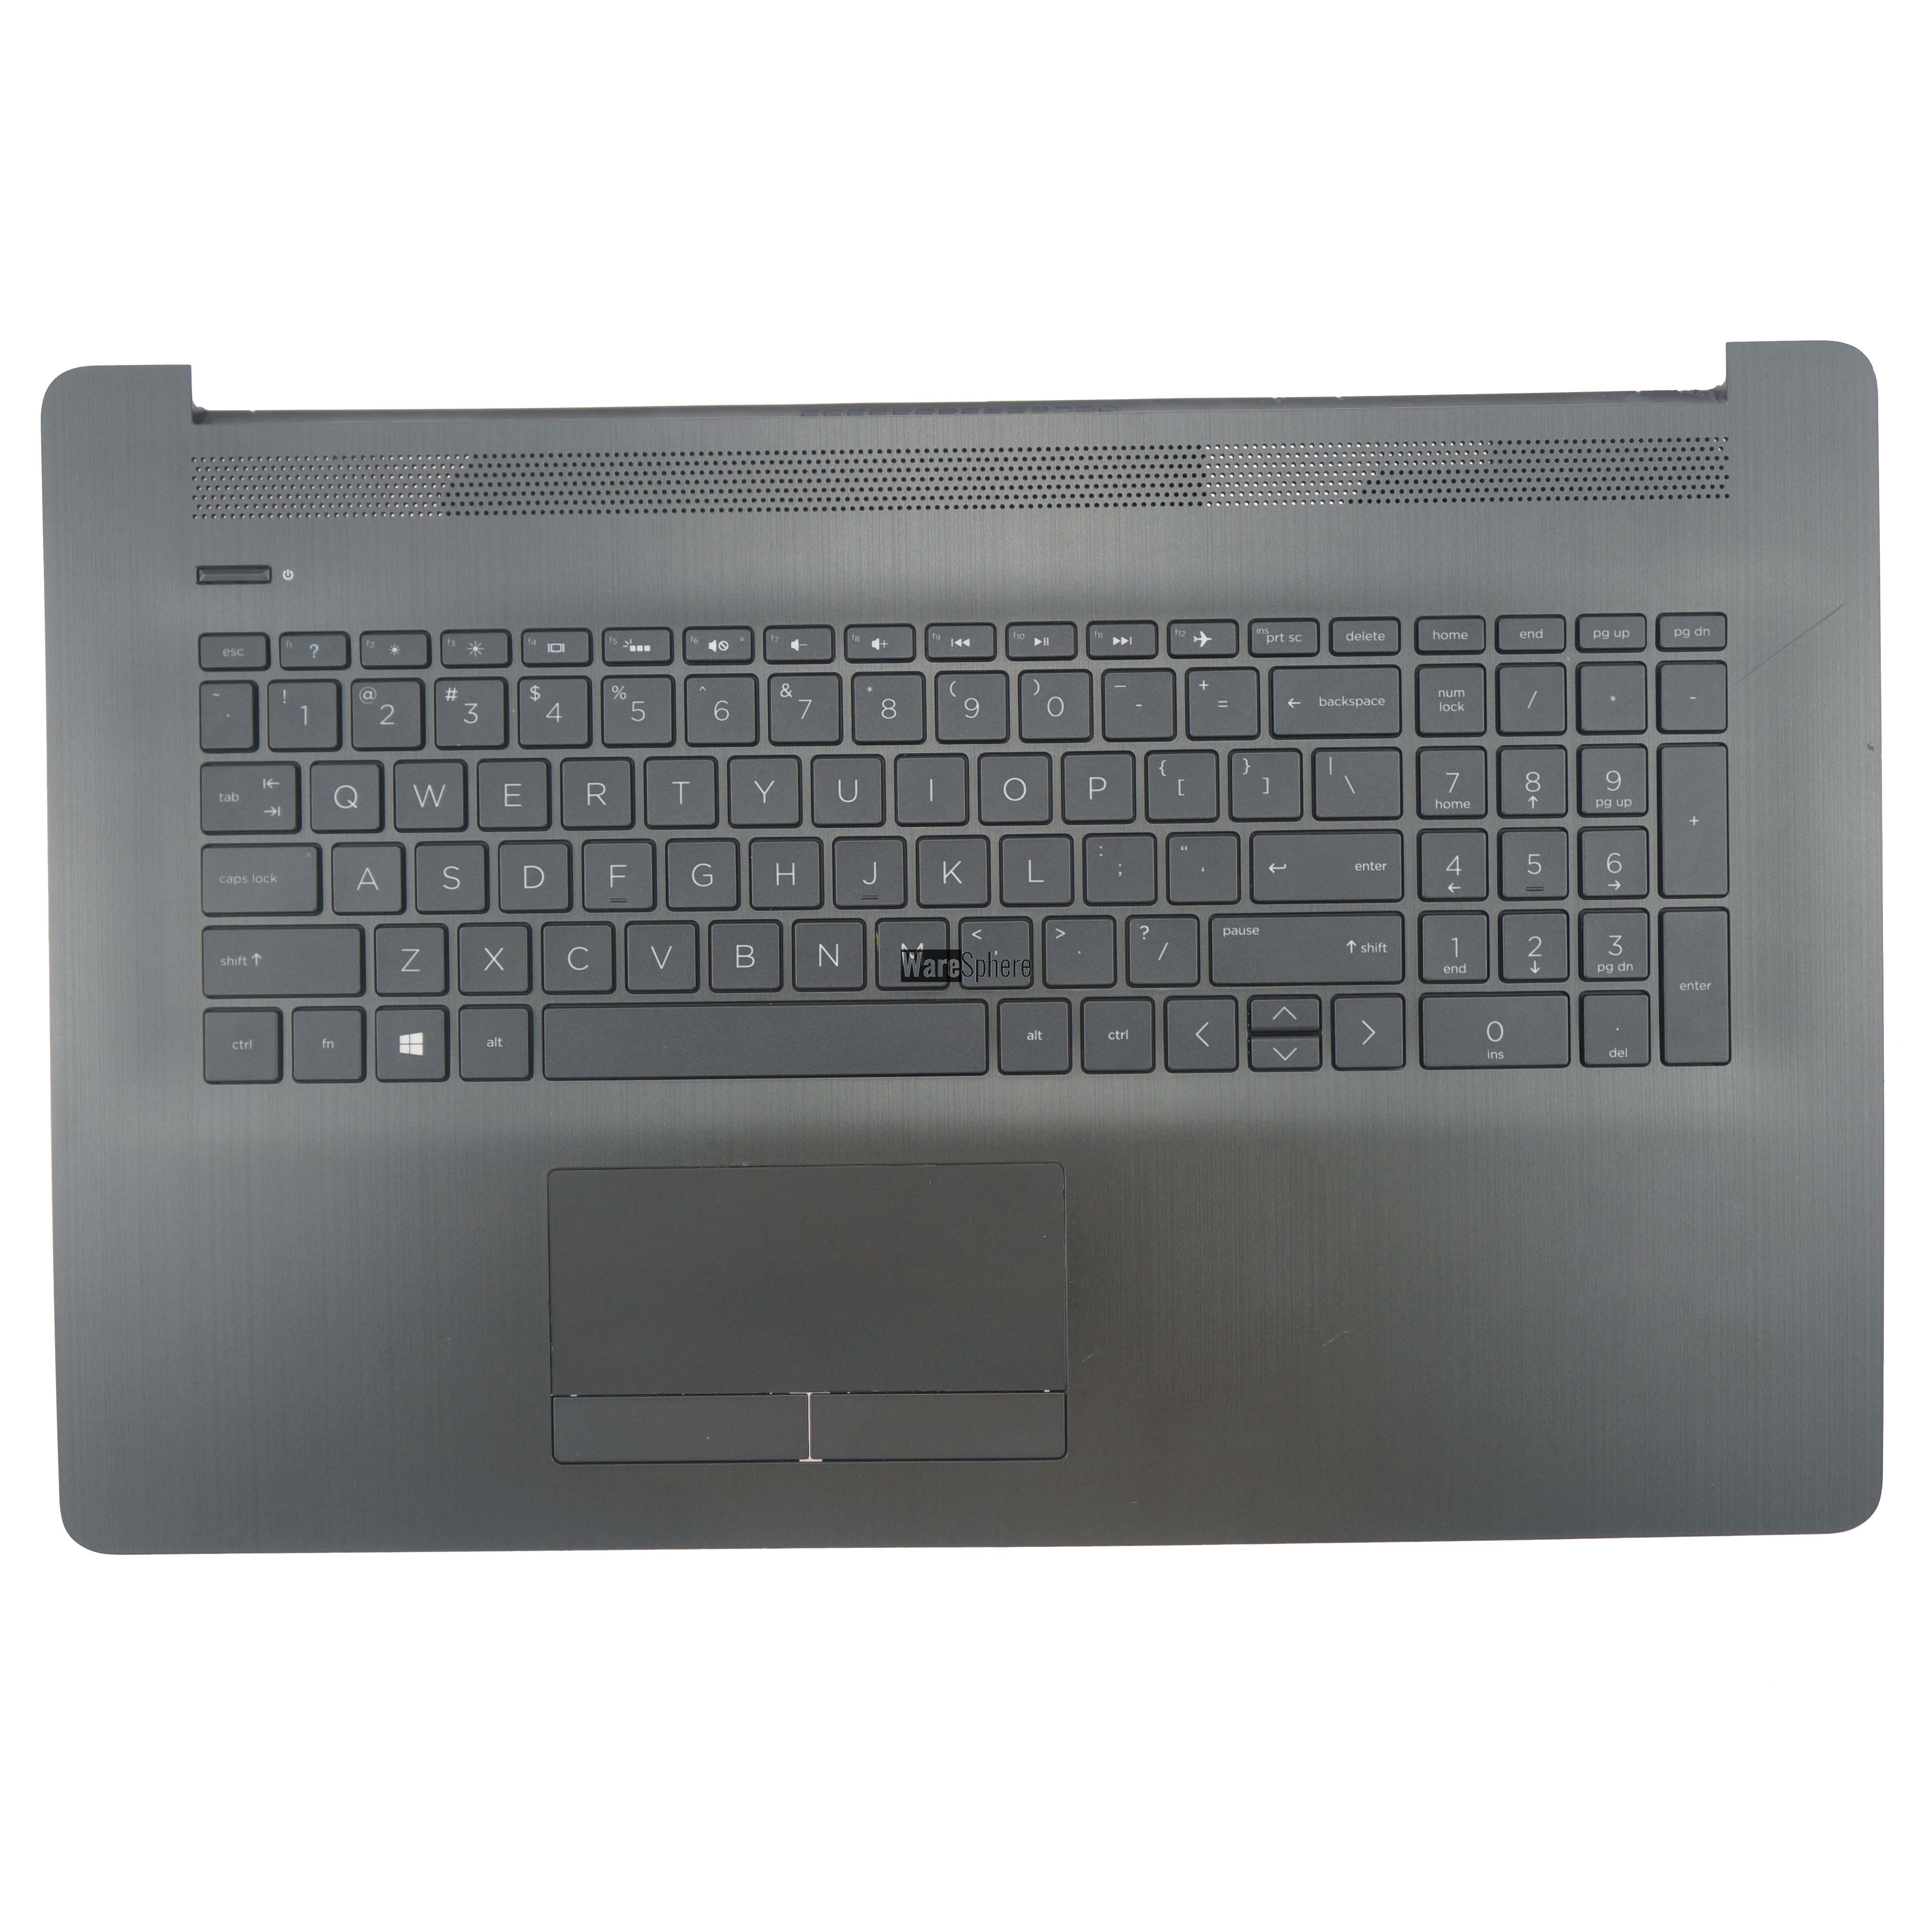 Top Cover Upper Case for HP 17-BY Palmrest With Keyboard 6070B1308103 L22751-001 Black US